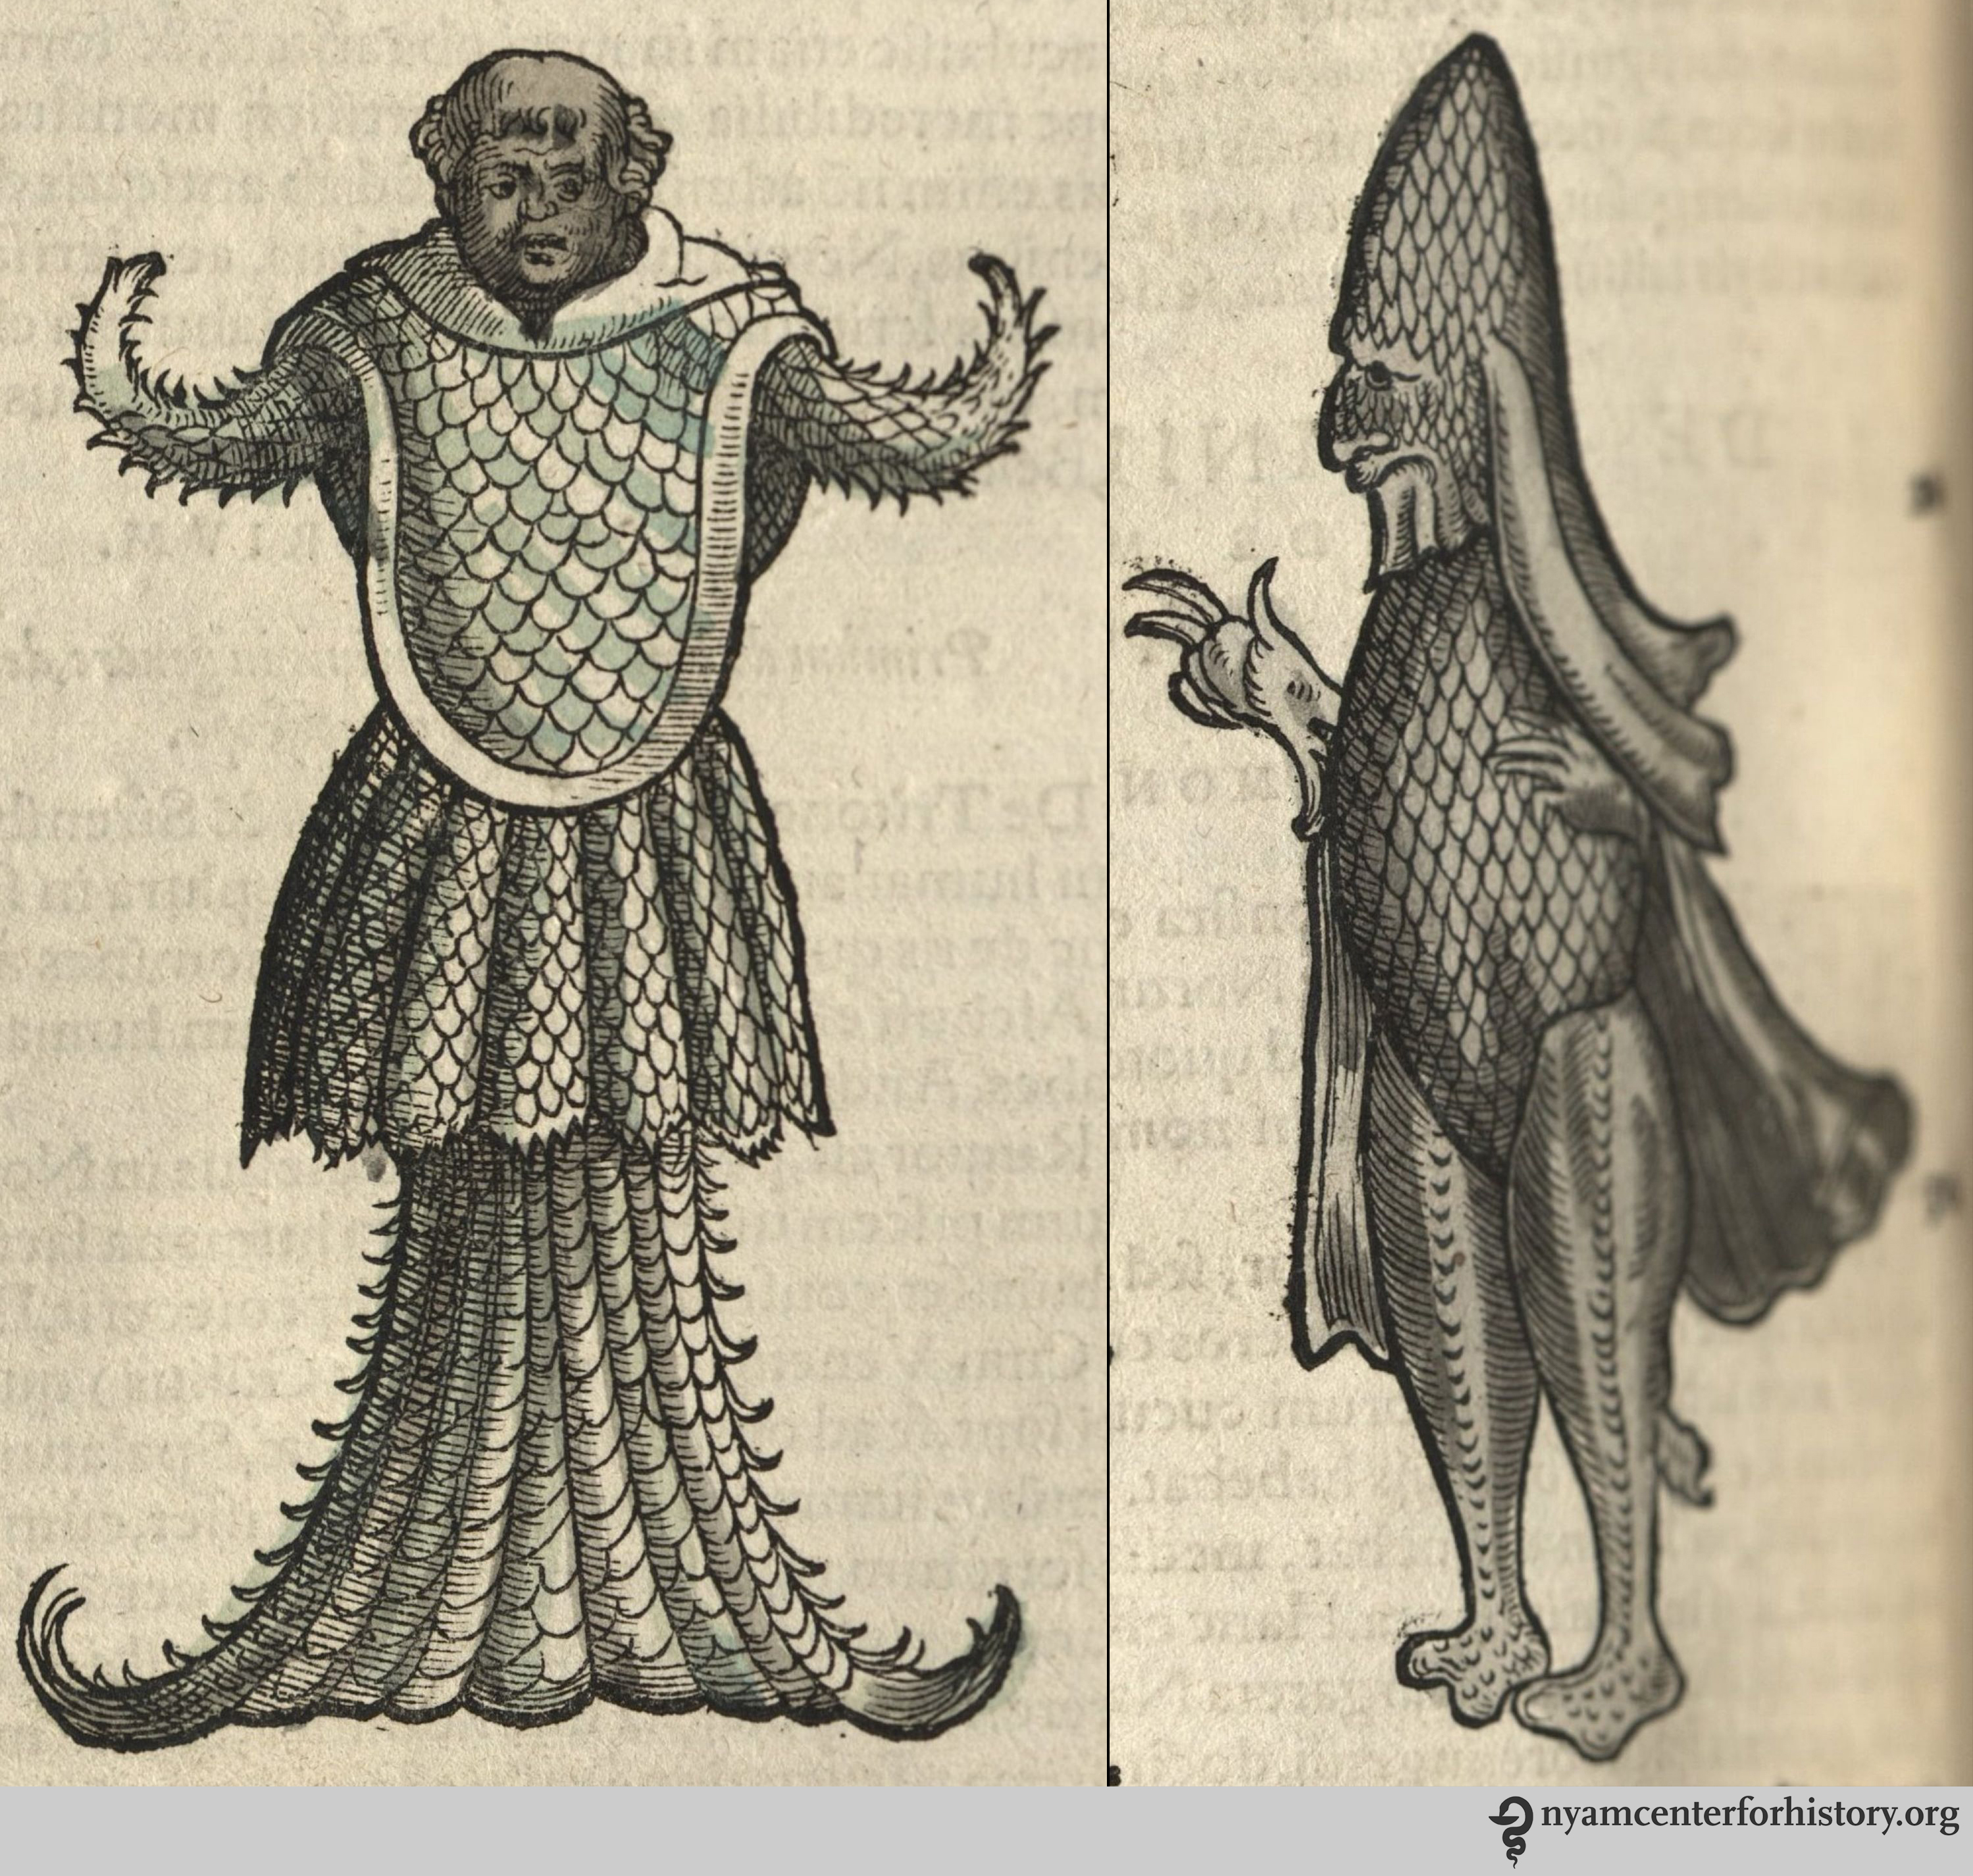 merman or mandrake costume ideas from our collection